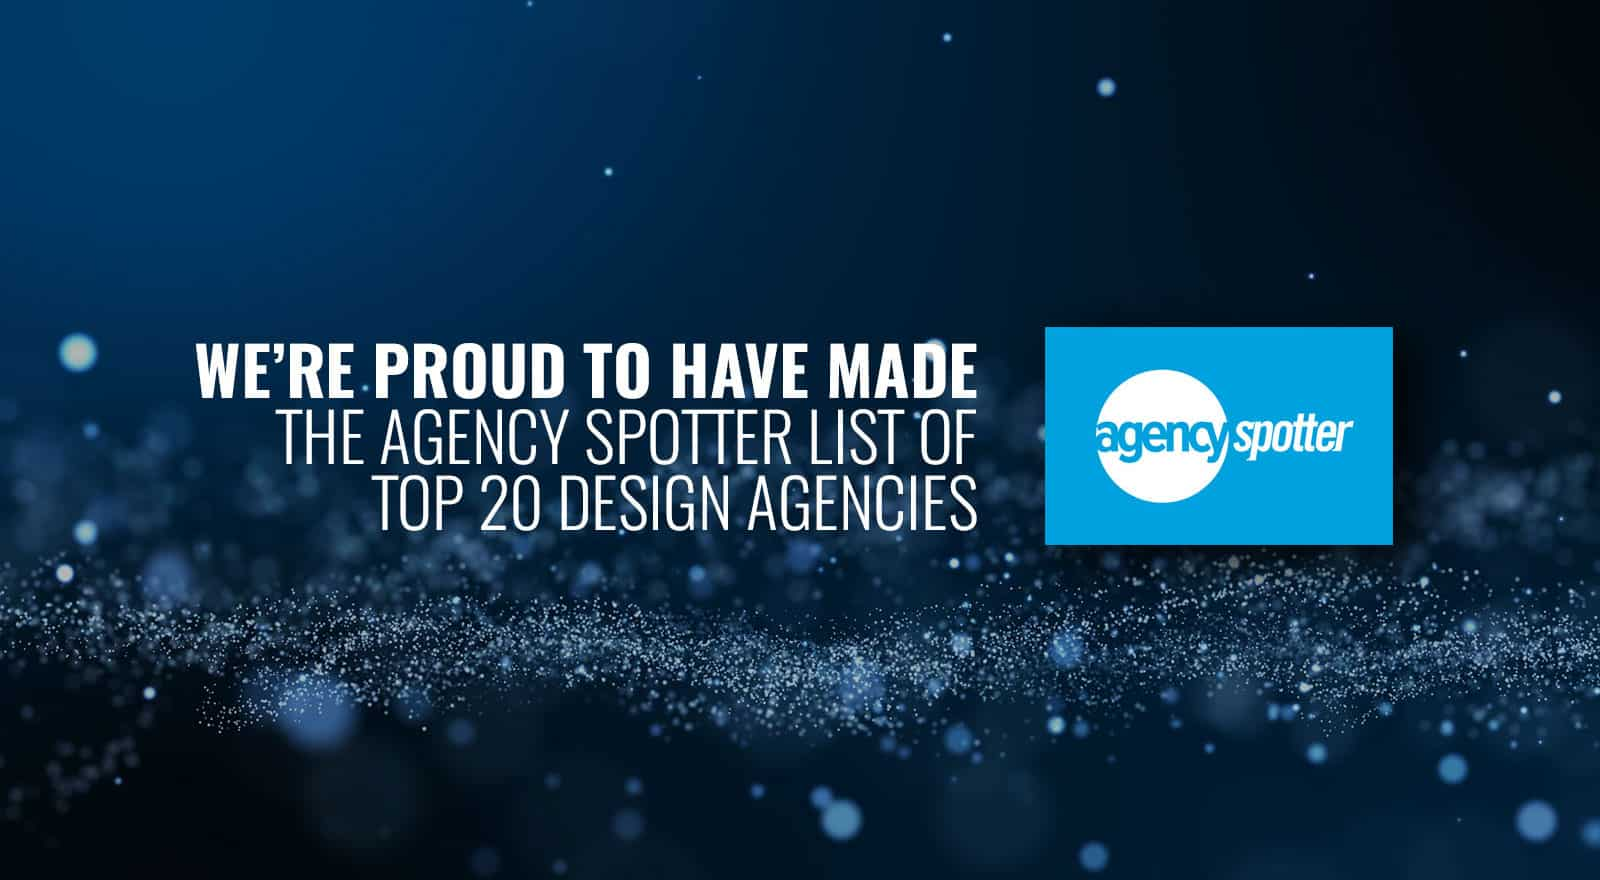 We're proud to have made the agency spotter list of top 20 design agencies.